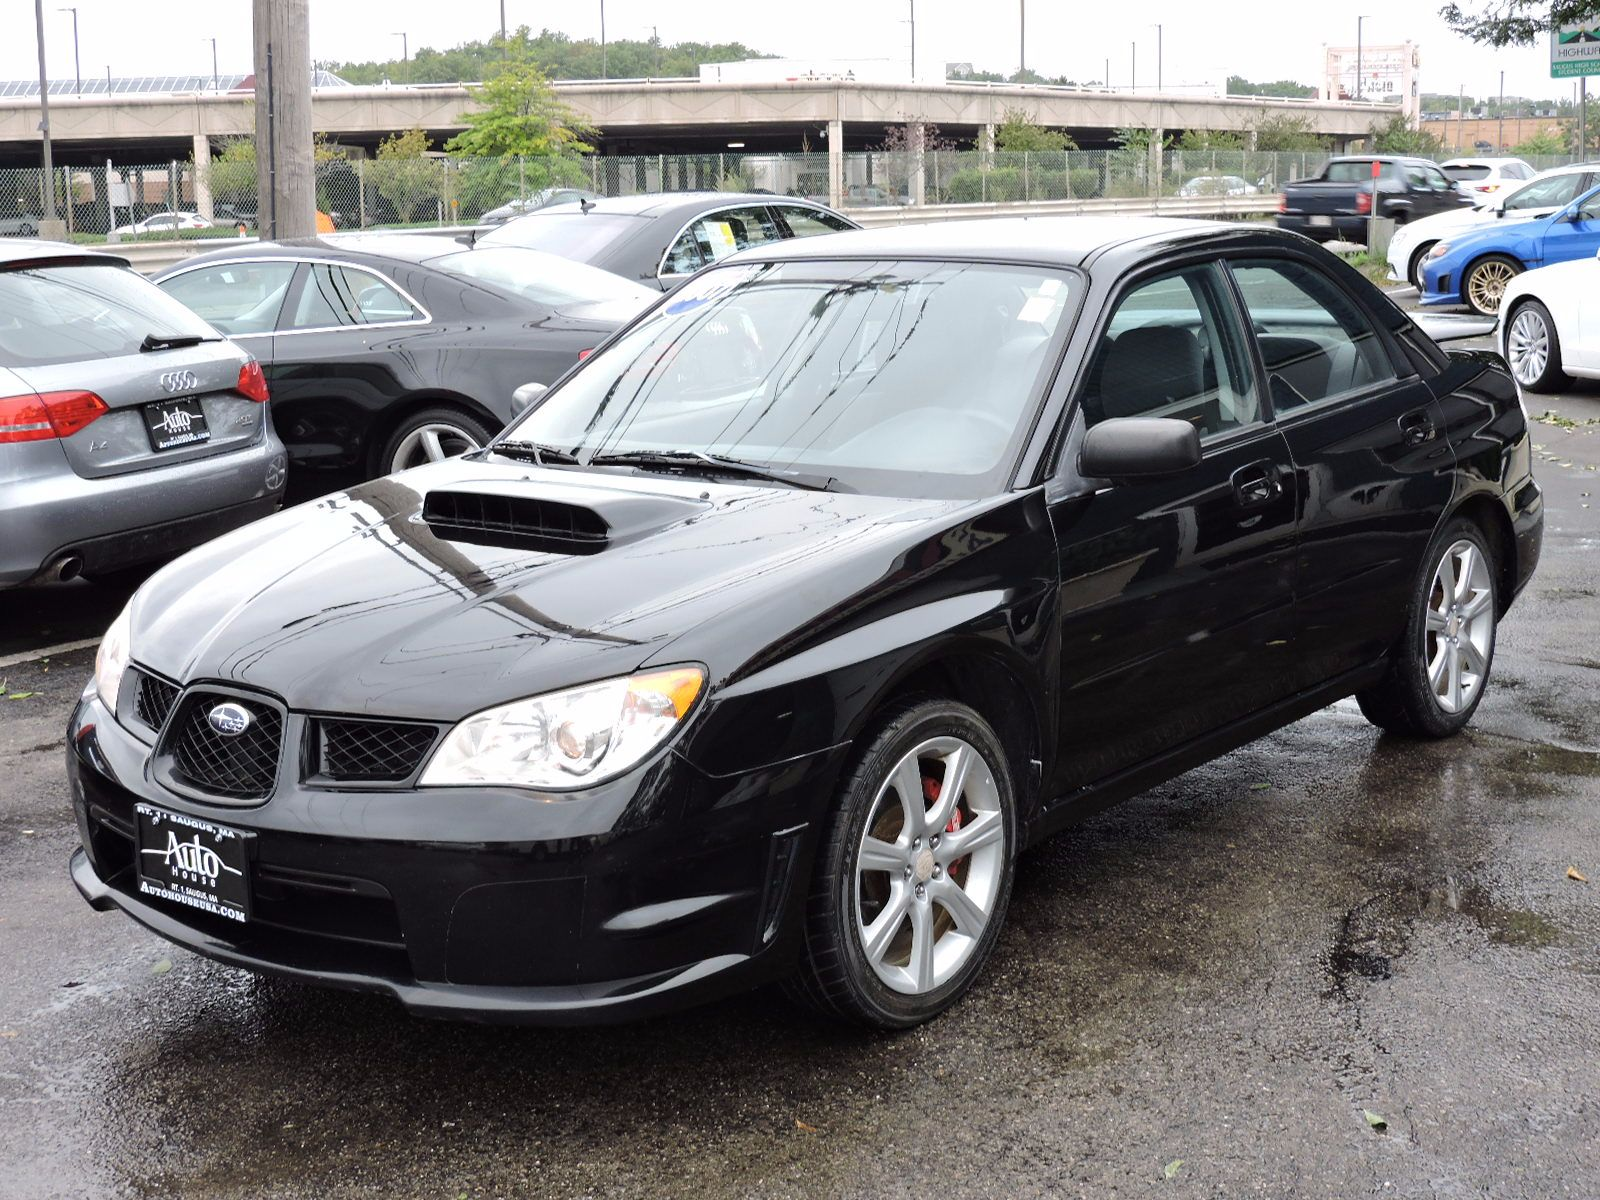 2007 Subaru Impreza WRX - All Wheel Drive